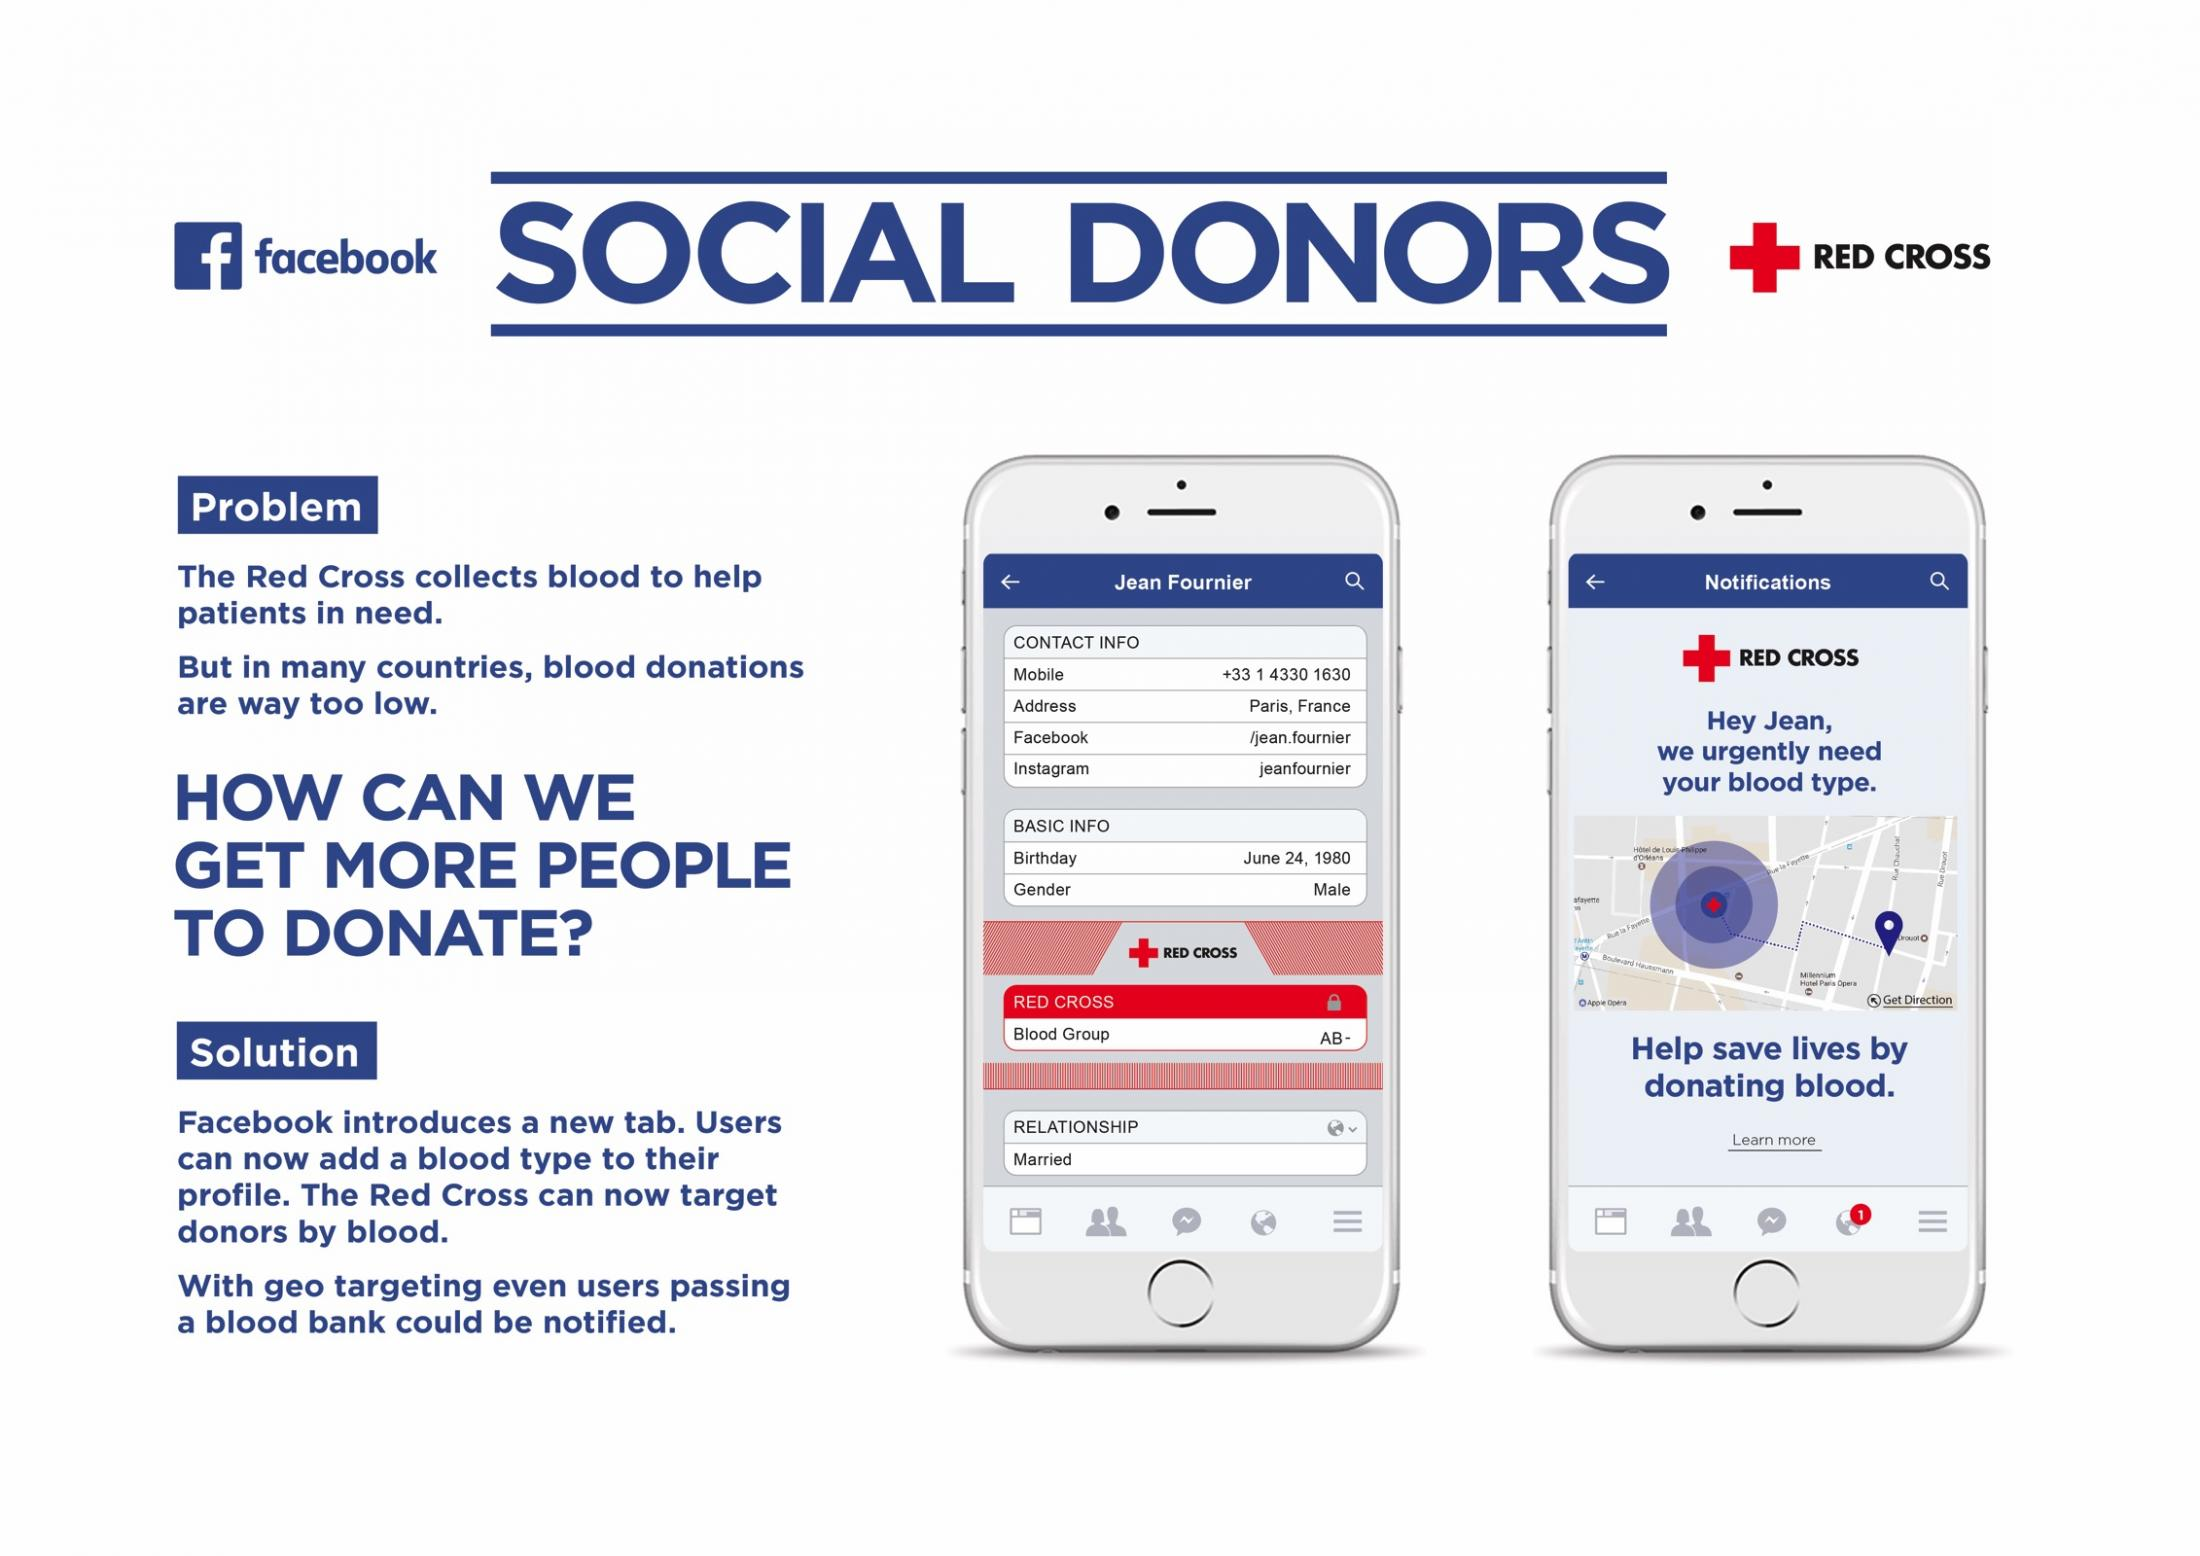 Red Cross Digital Ad - Social Donors